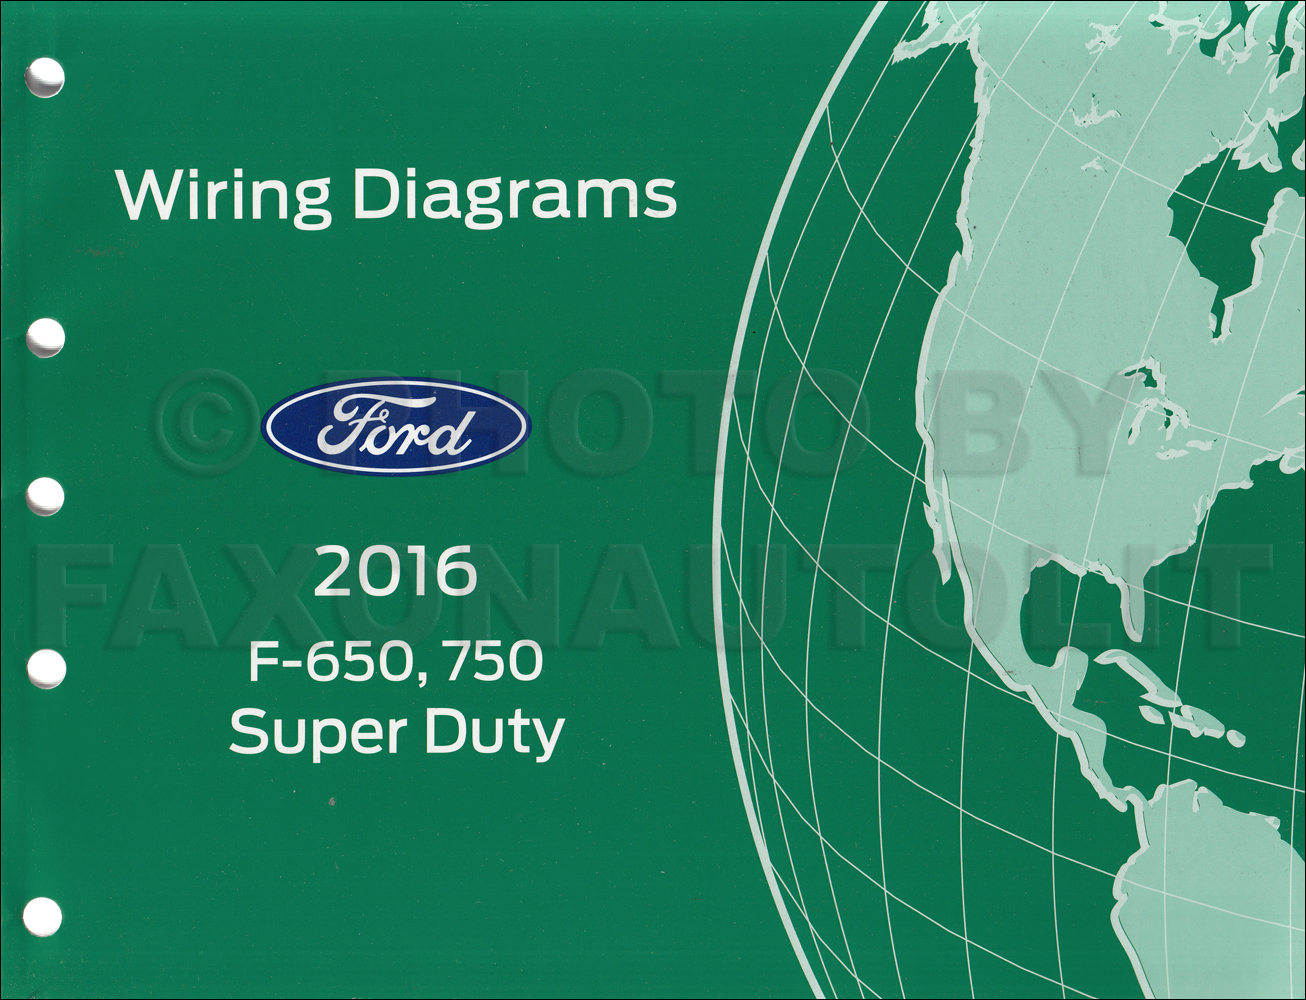 2016 ford f 650 and f 750 super duty truck wiring diagram manual  2016fordf650750superdutyowd jpg